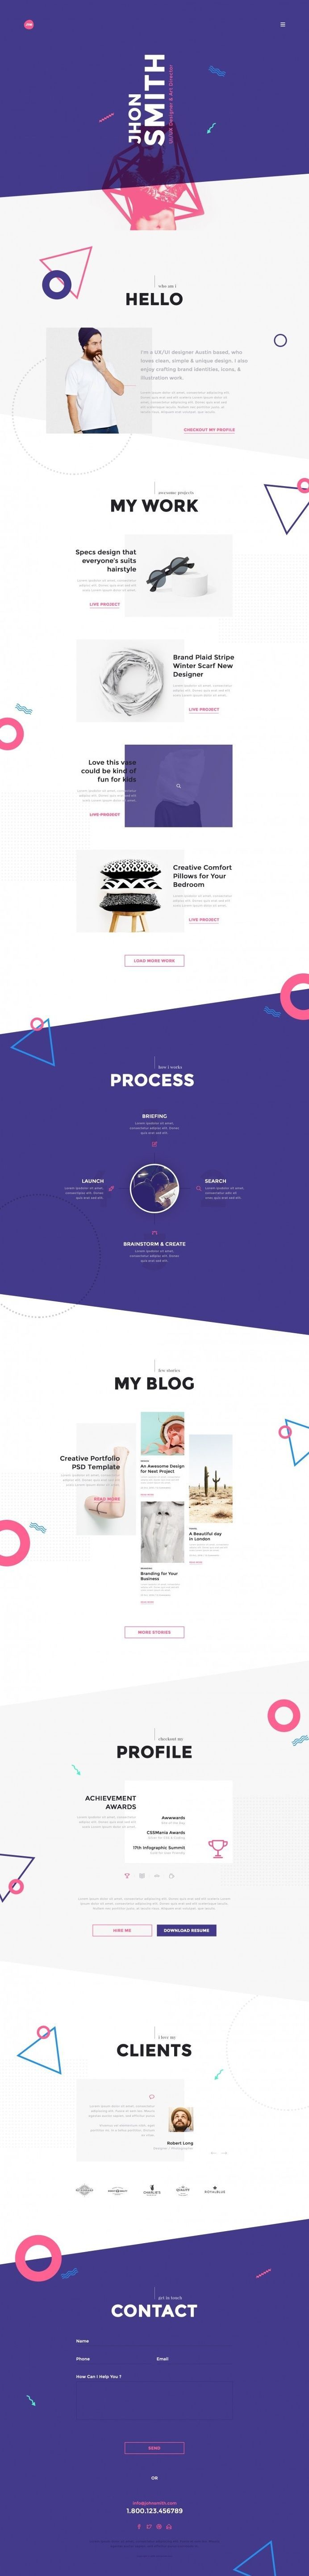 Build a website of your dreams with the WordPress Divi Theme - http://www.elegantthemes.com/affiliates/idevaffiliate.php?id=38899.   Want to start a WordPress website? WordPress for Beginners: Set up a website in 6 days - http://webdesignicandy.com/start-here/